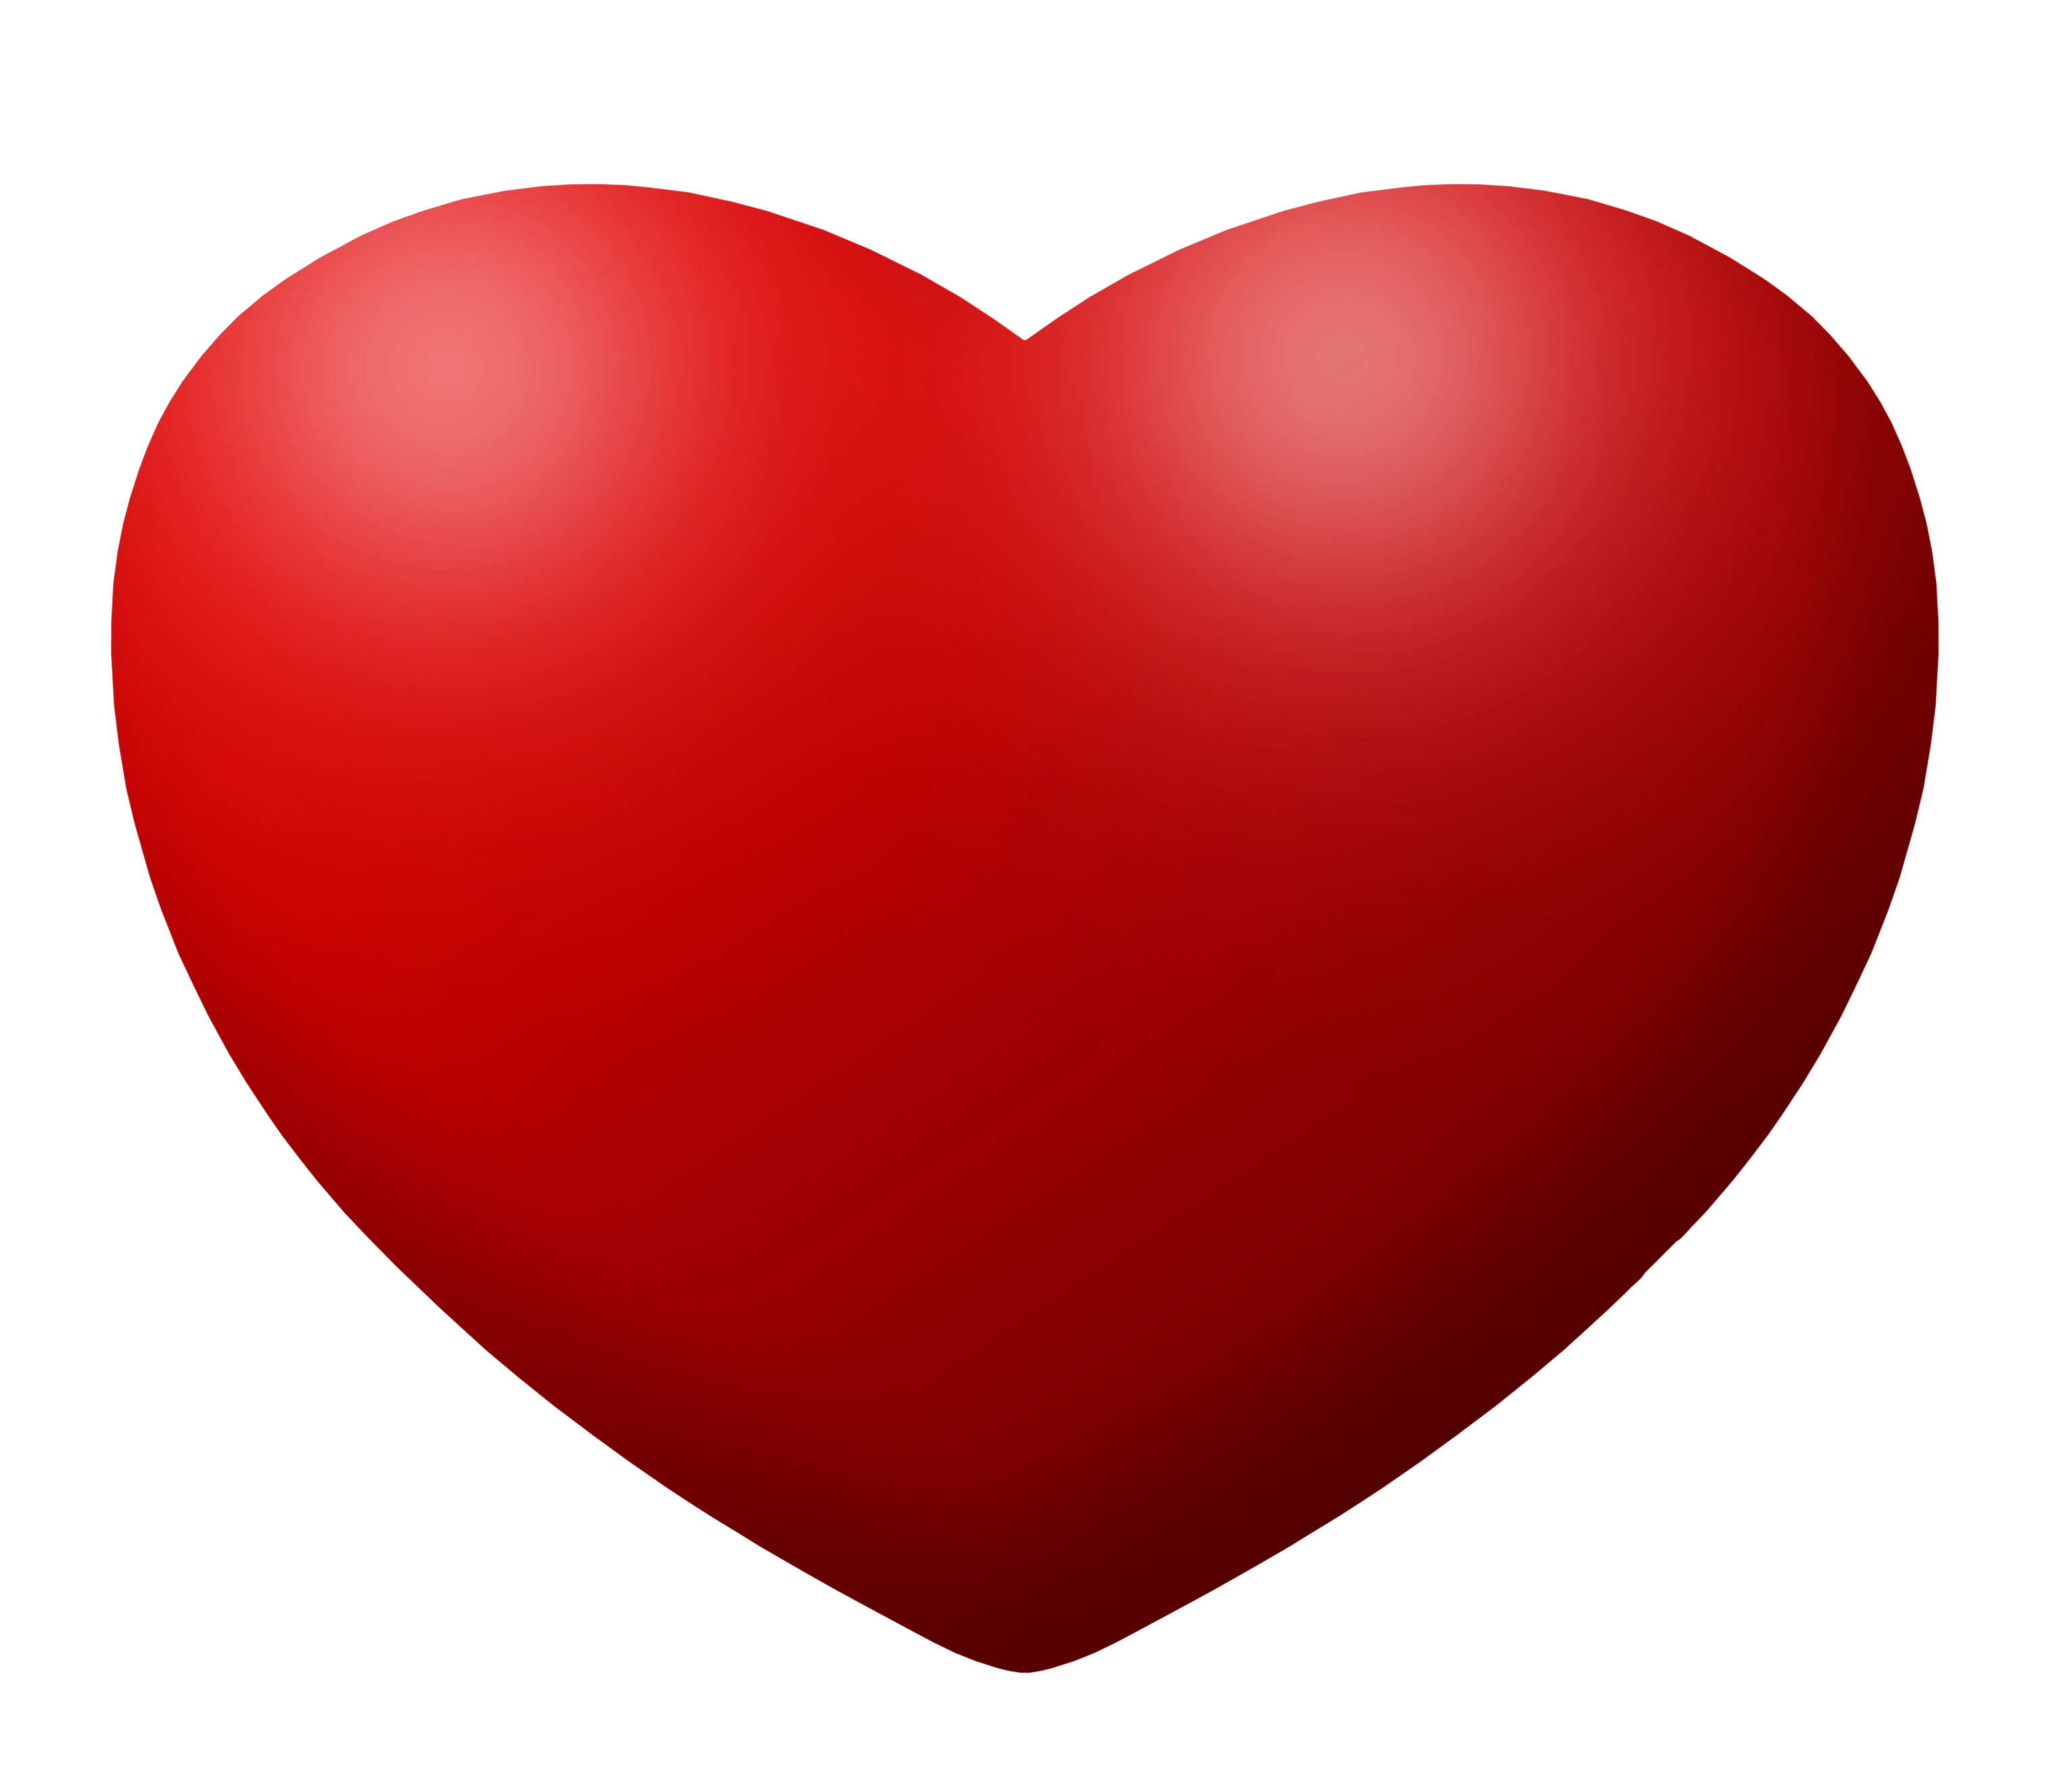 Heart PNG free images - HD Wallpapers - PNG HD Hearts - Heart PNG HD Free